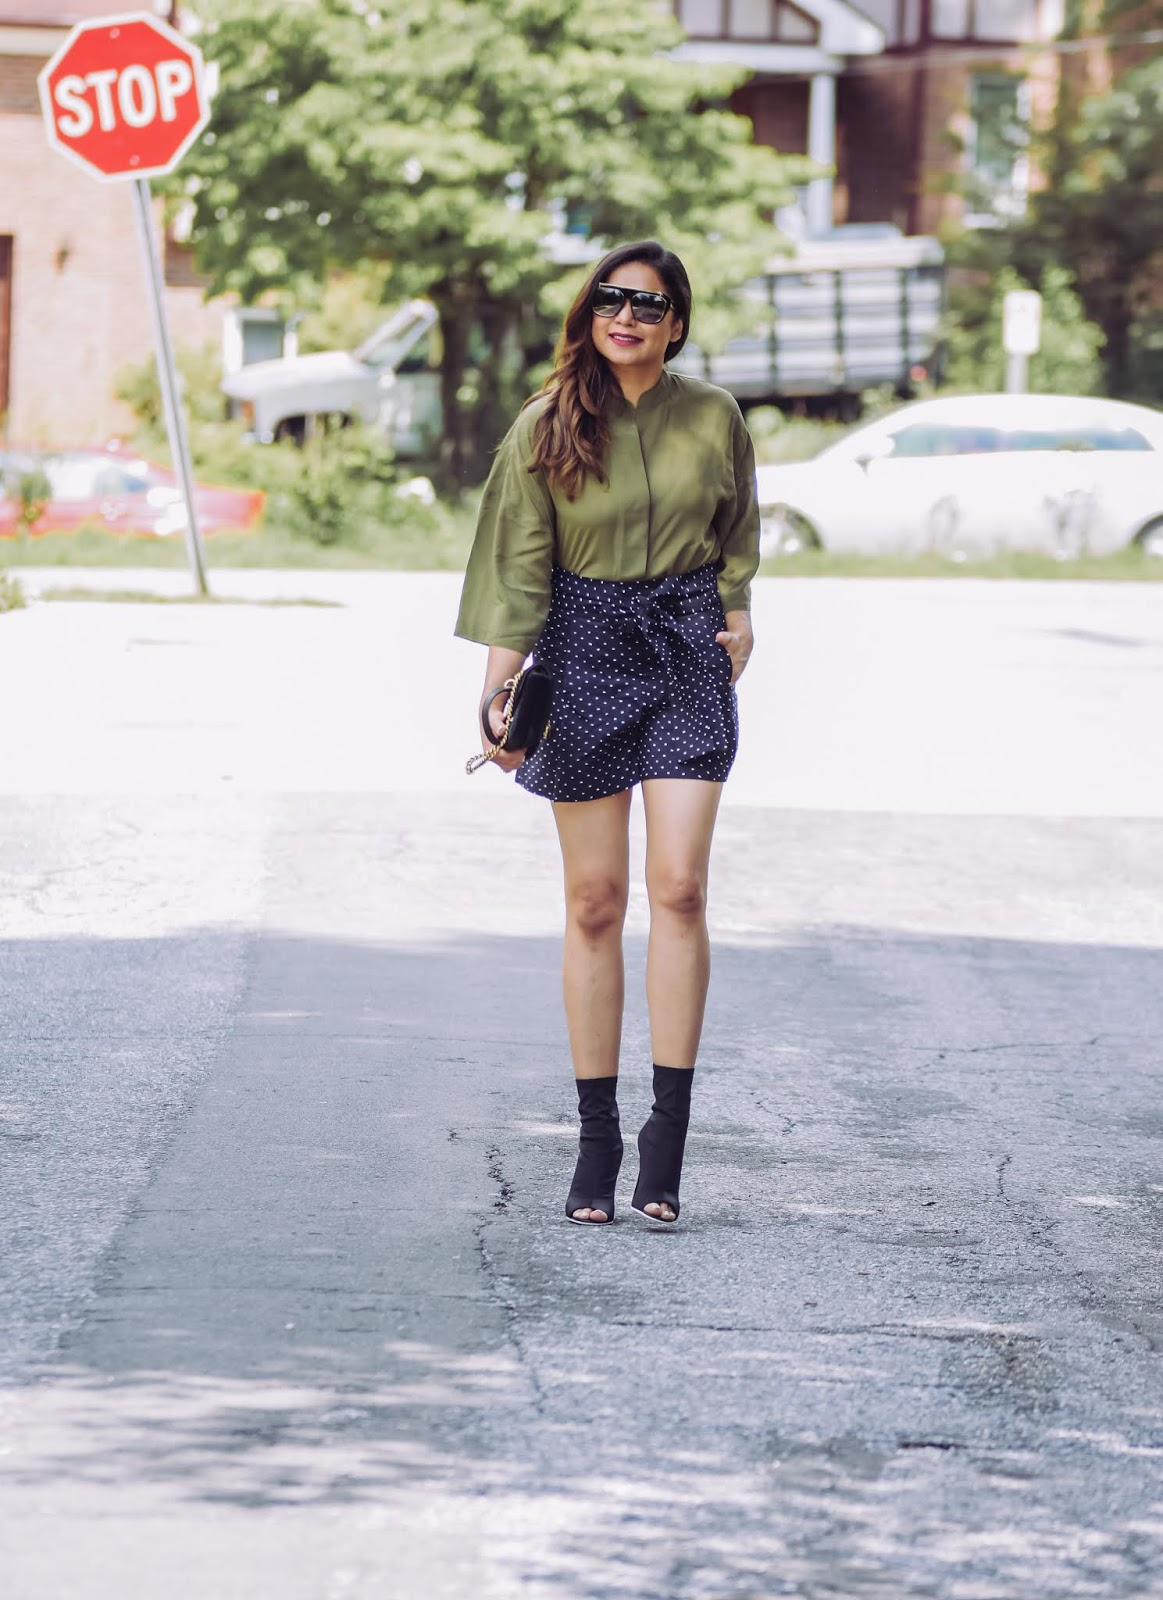 shorts and silk blouse, black high waisted j crew shorts, polka dot shorts, olive green silk blouse, street style, dc blogger, statement sunglasses, july fourth outfit, myriad musings